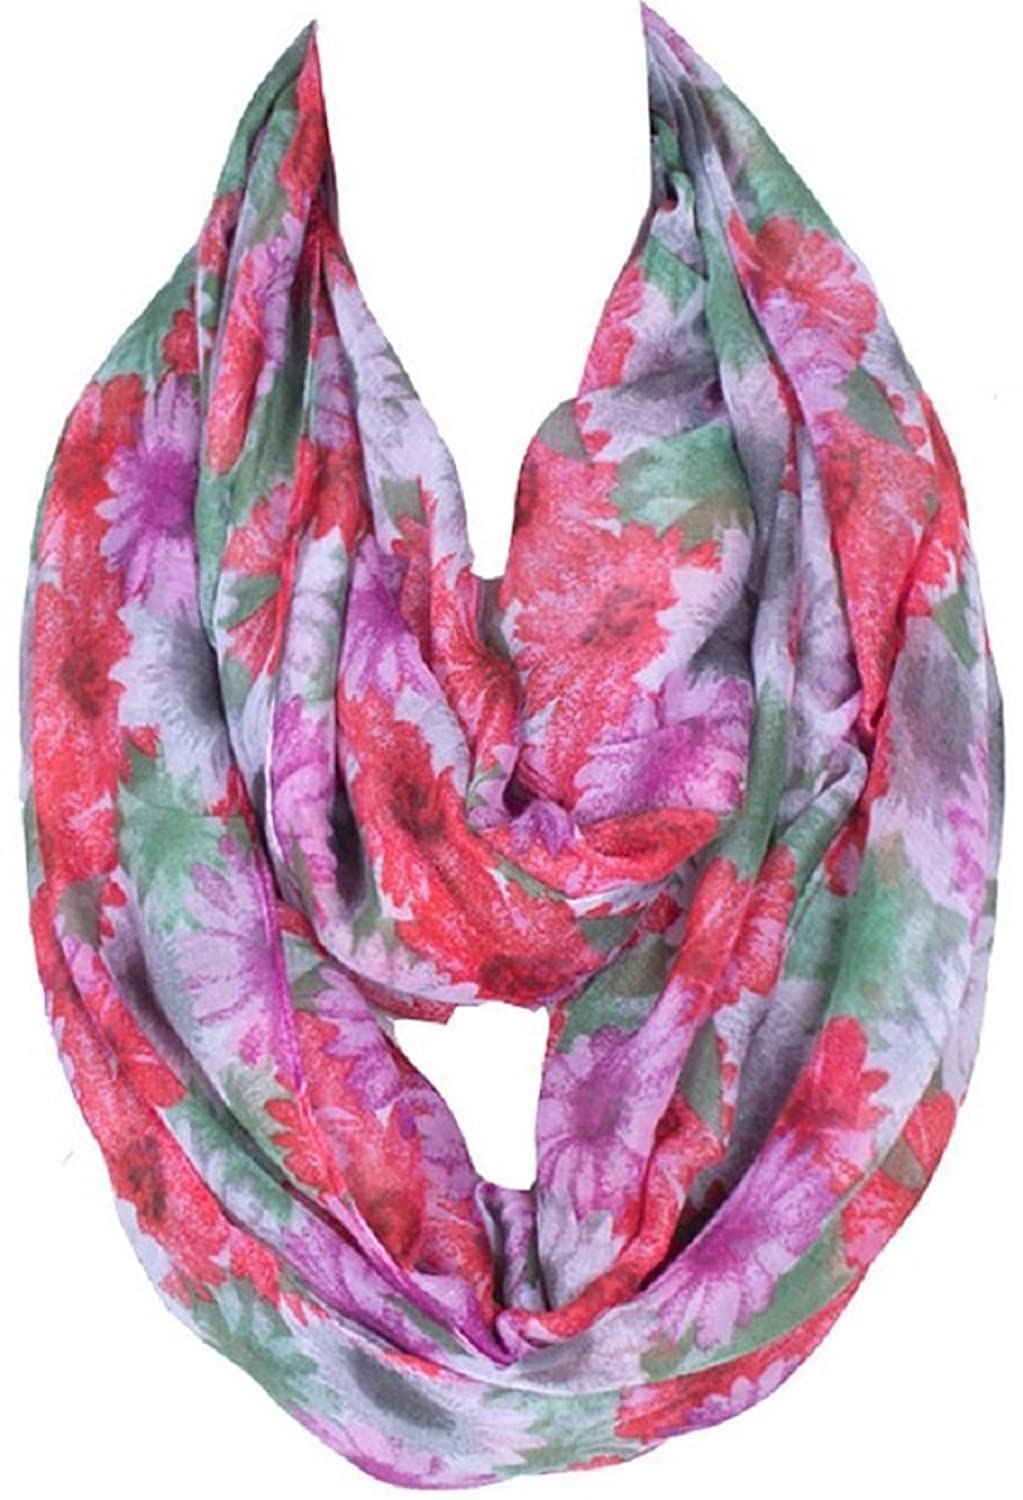 Bettyhome Women's Infinity Loop Scarf Chevron Sheer Fashion Big Flower Pattern Shawl 70.87 inch x 35.43 inch